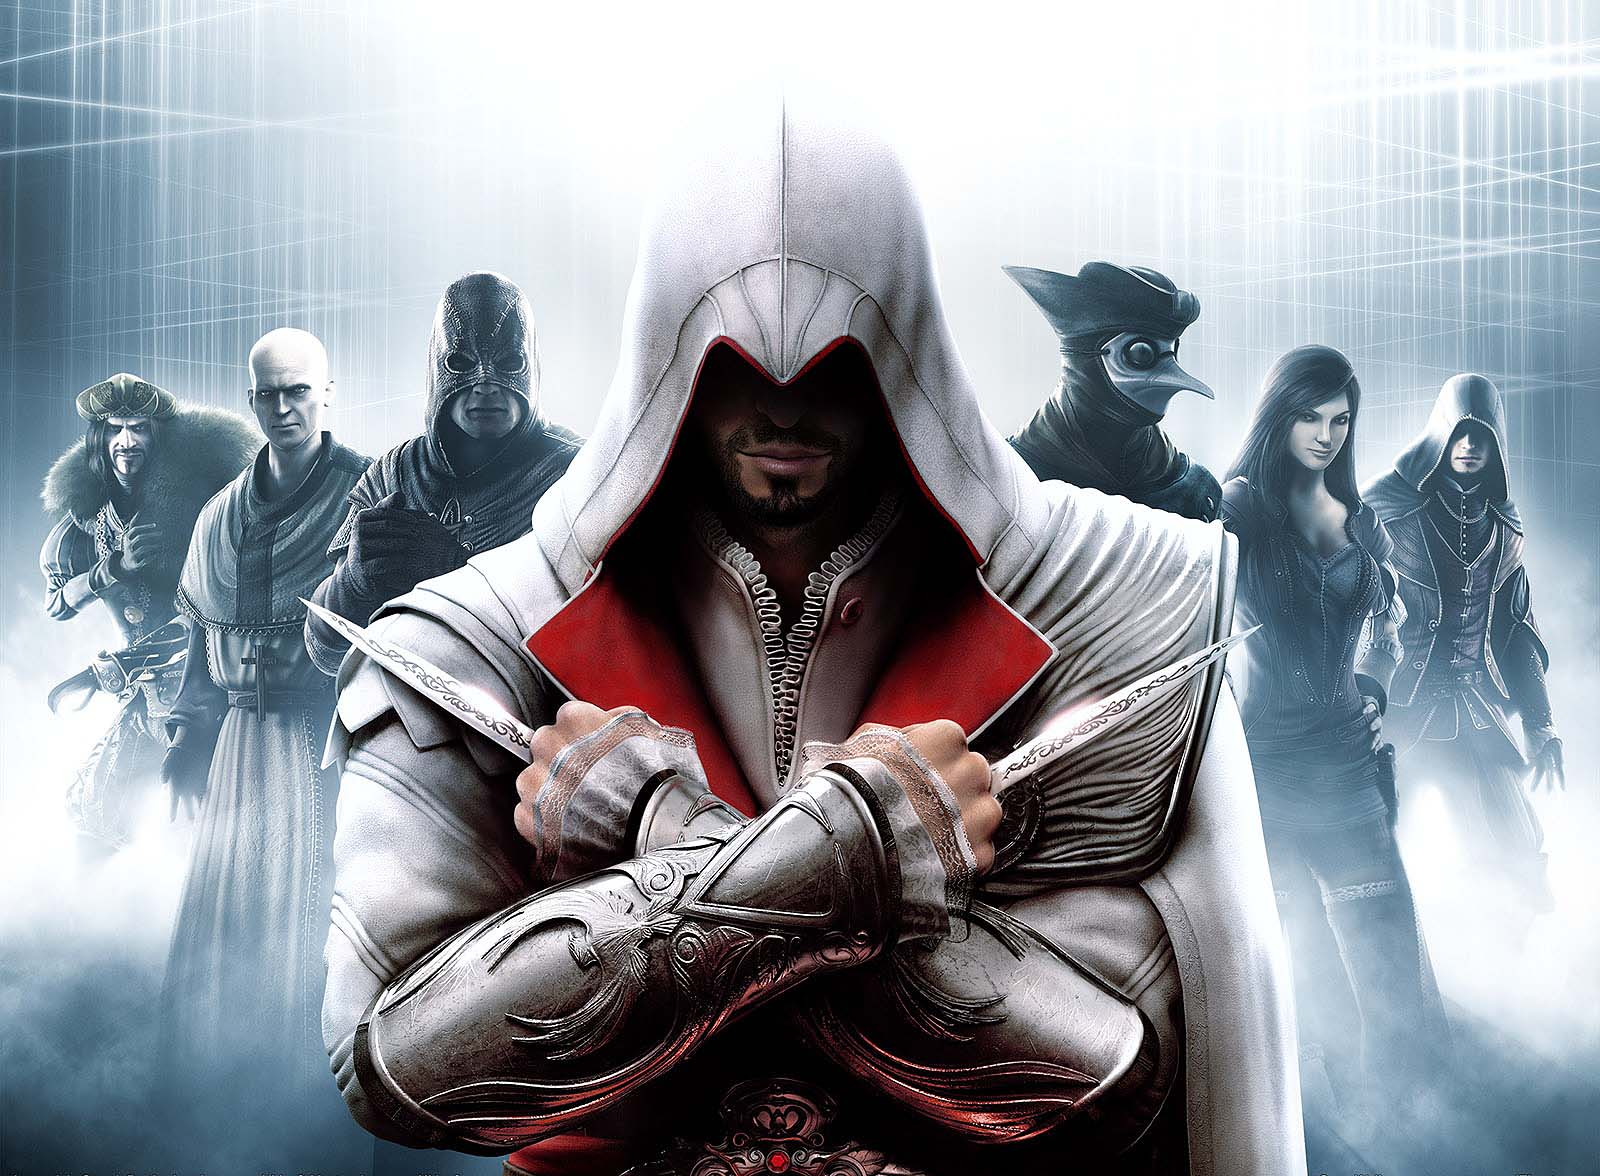 http://2.bp.blogspot.com/_xeGzvW0HSLA/TO_HXbOn28I/AAAAAAAAAIw/v4TdPYqe2mI/s1600/wallpaper_assassins_creed_brotherhood_04_1600.jpg